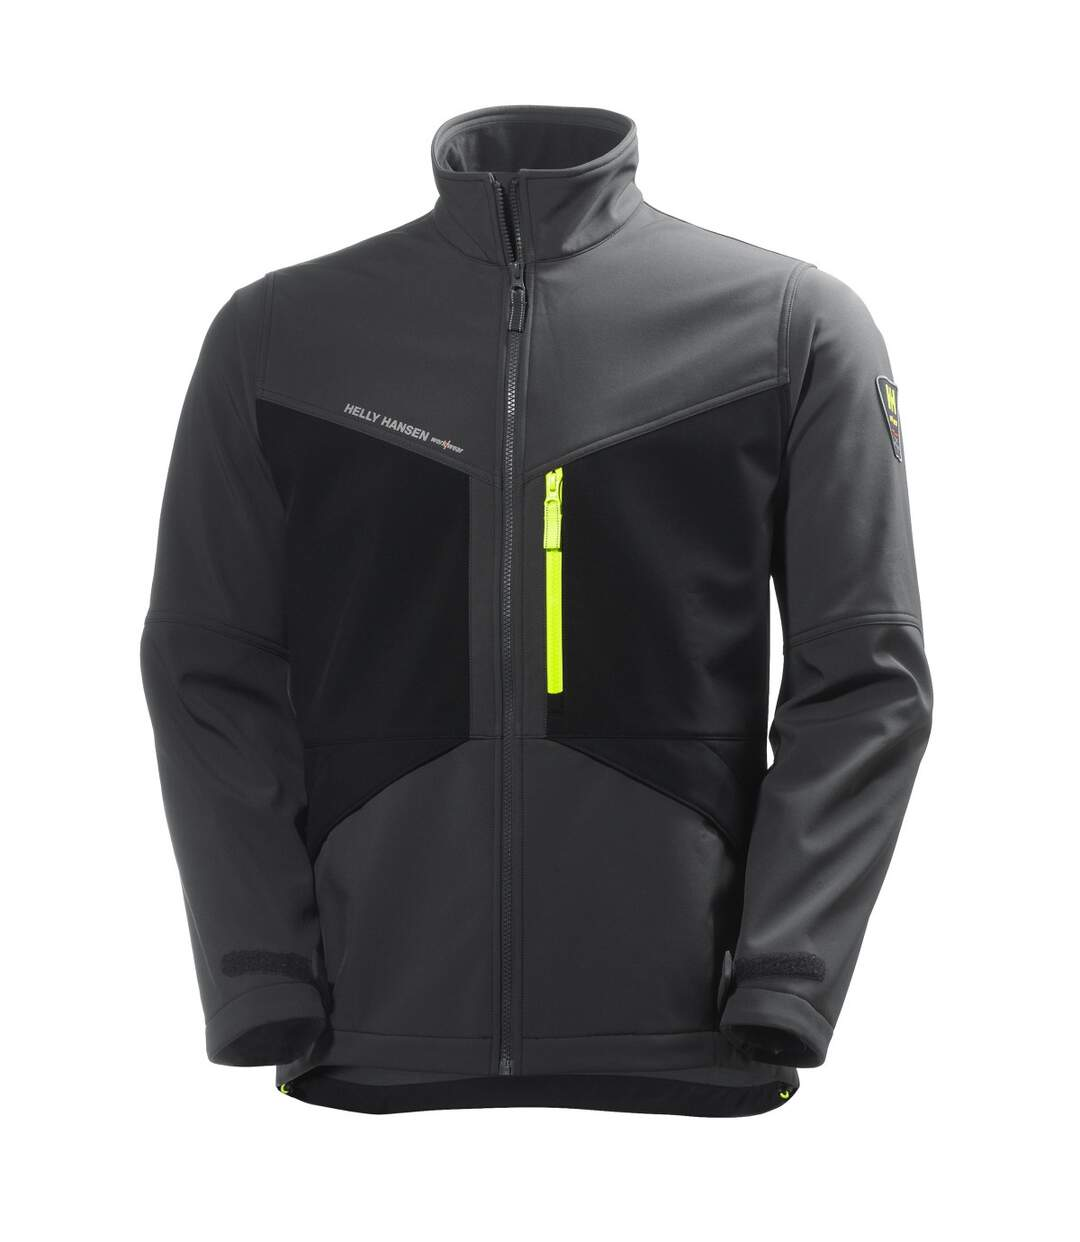 Helly Hansen Mens Aker Softshell Jacket (Slate Grey/Black) - UTBC3947